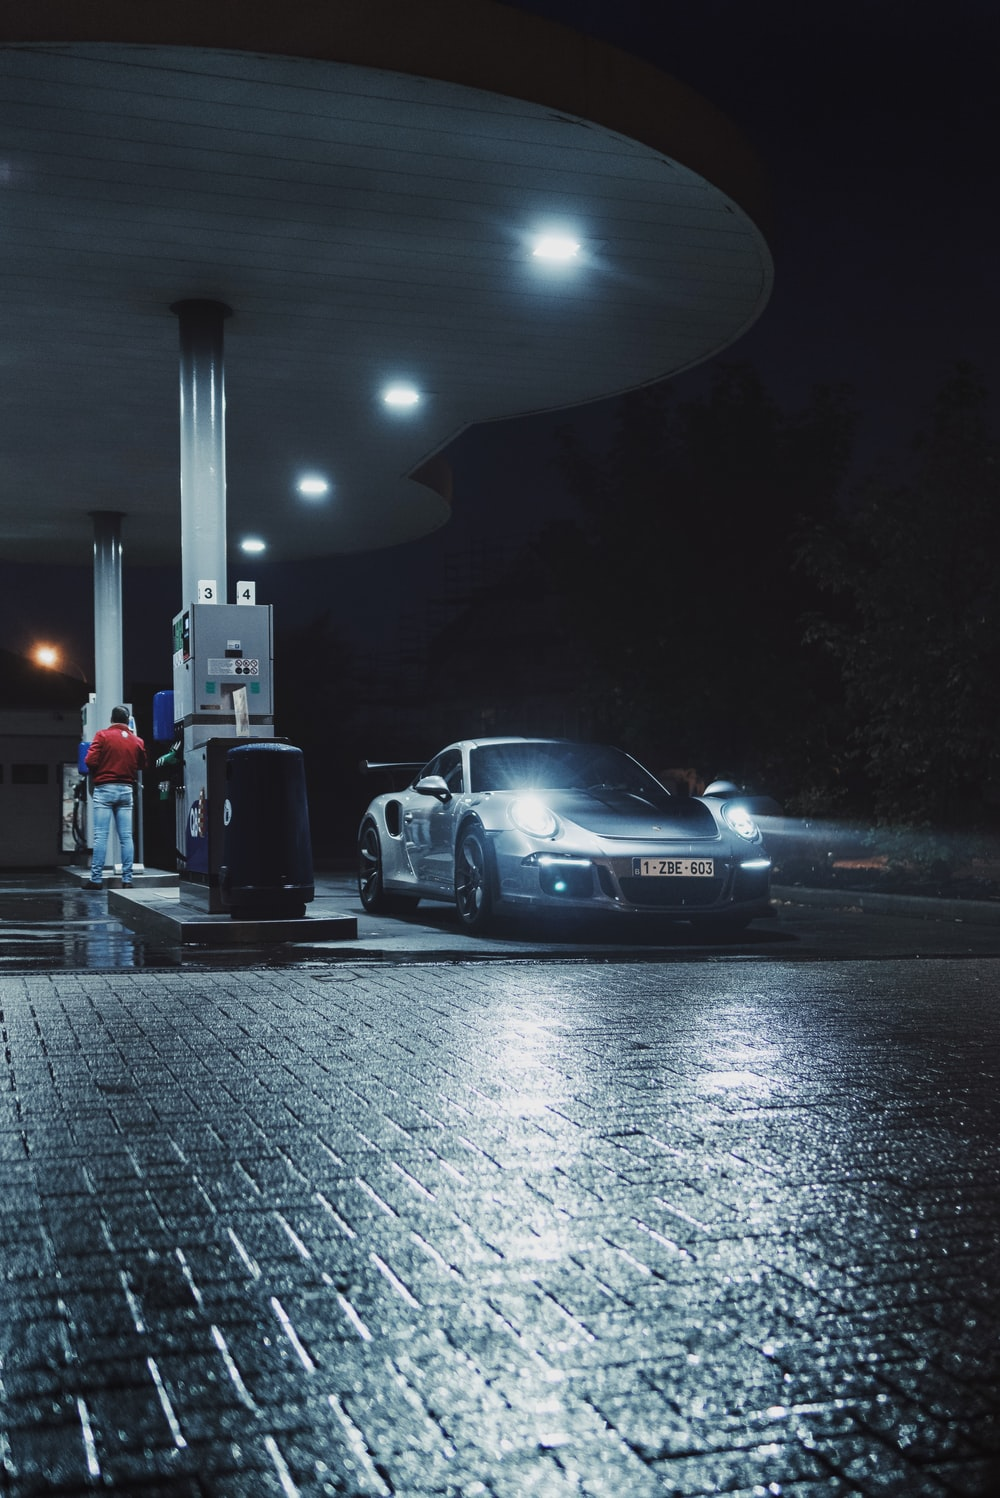 vehicle on gasoline station during nighttime